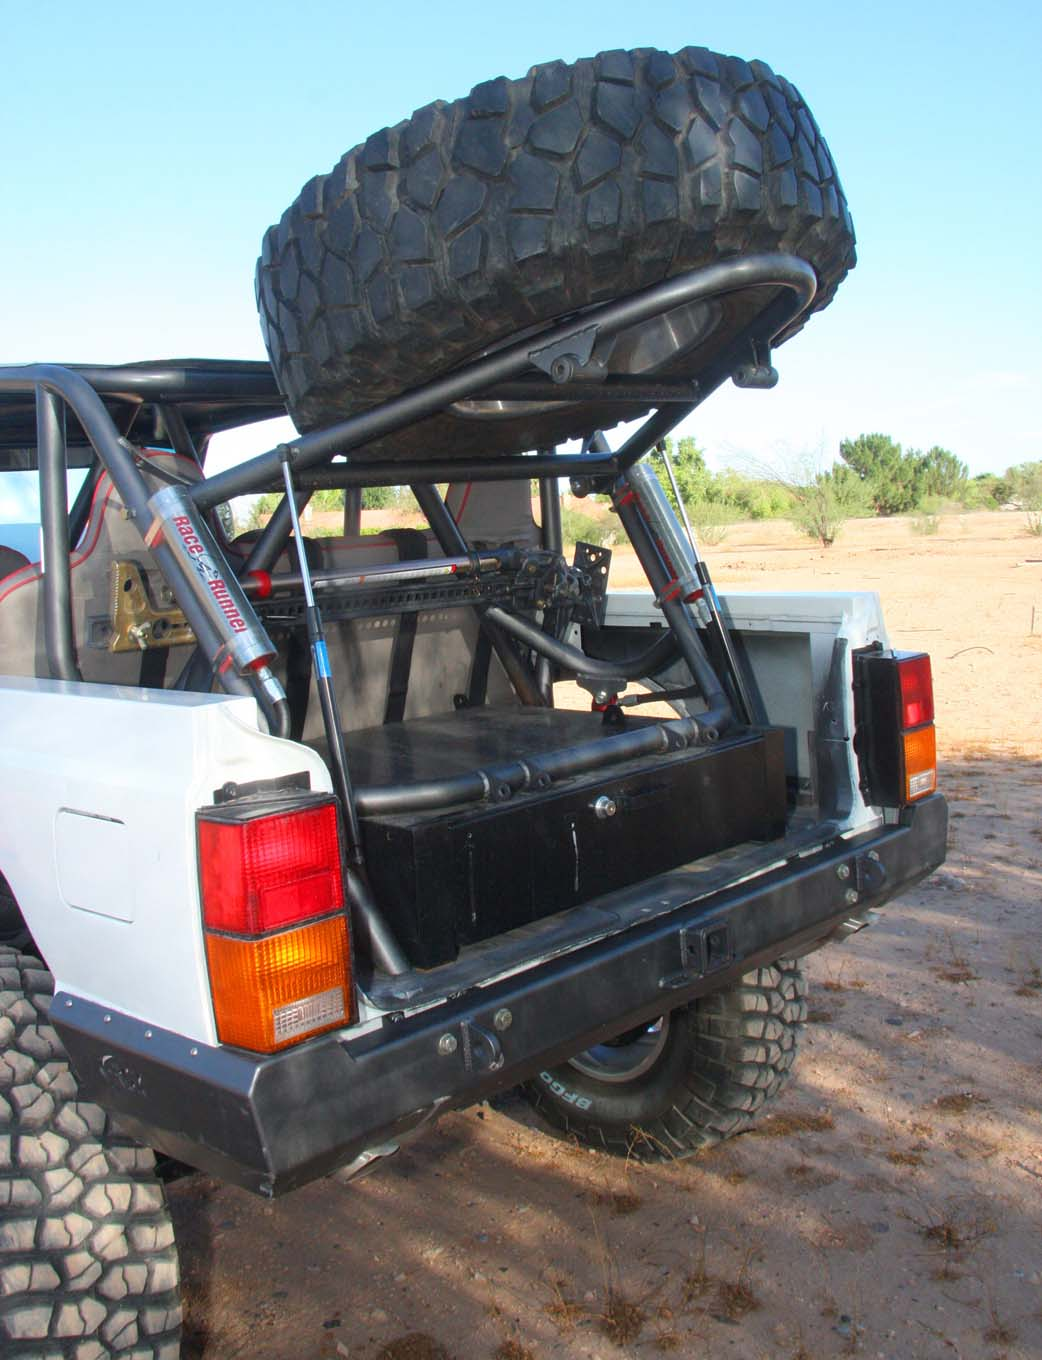 Post Pics of your Jeep - Page 58 - Expedition Portal